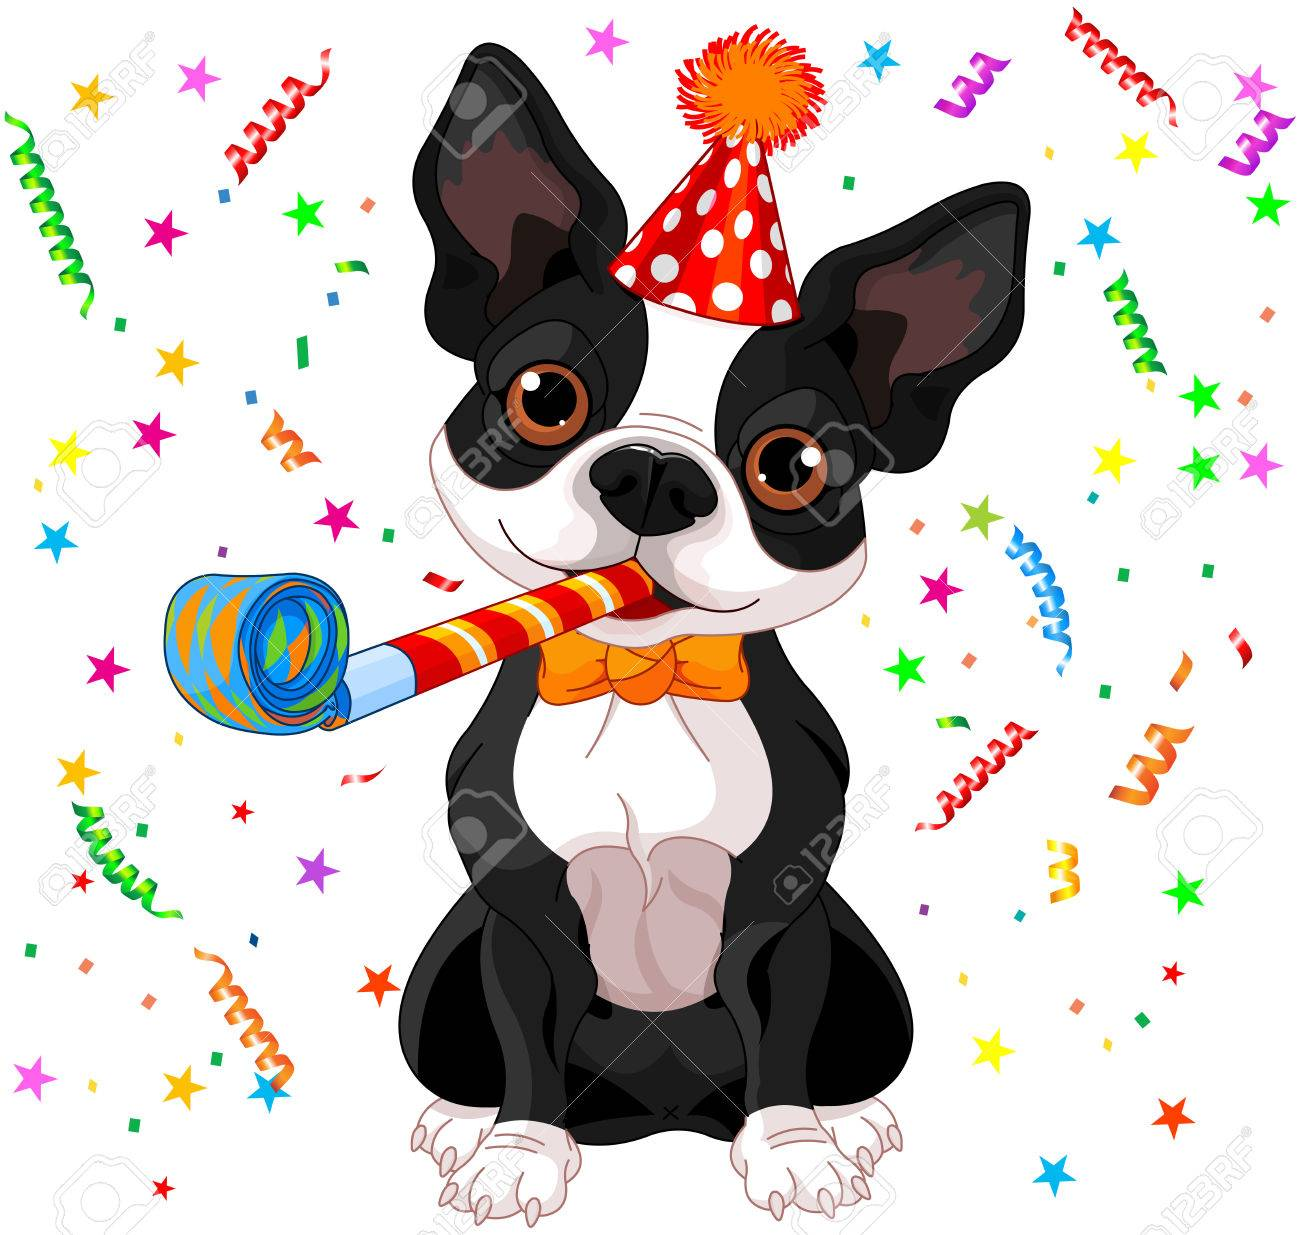 Une hiérarchie de dominance chez le chien? - Page 8 35588778-illustration-of-cute-boston-terrier-celebrating